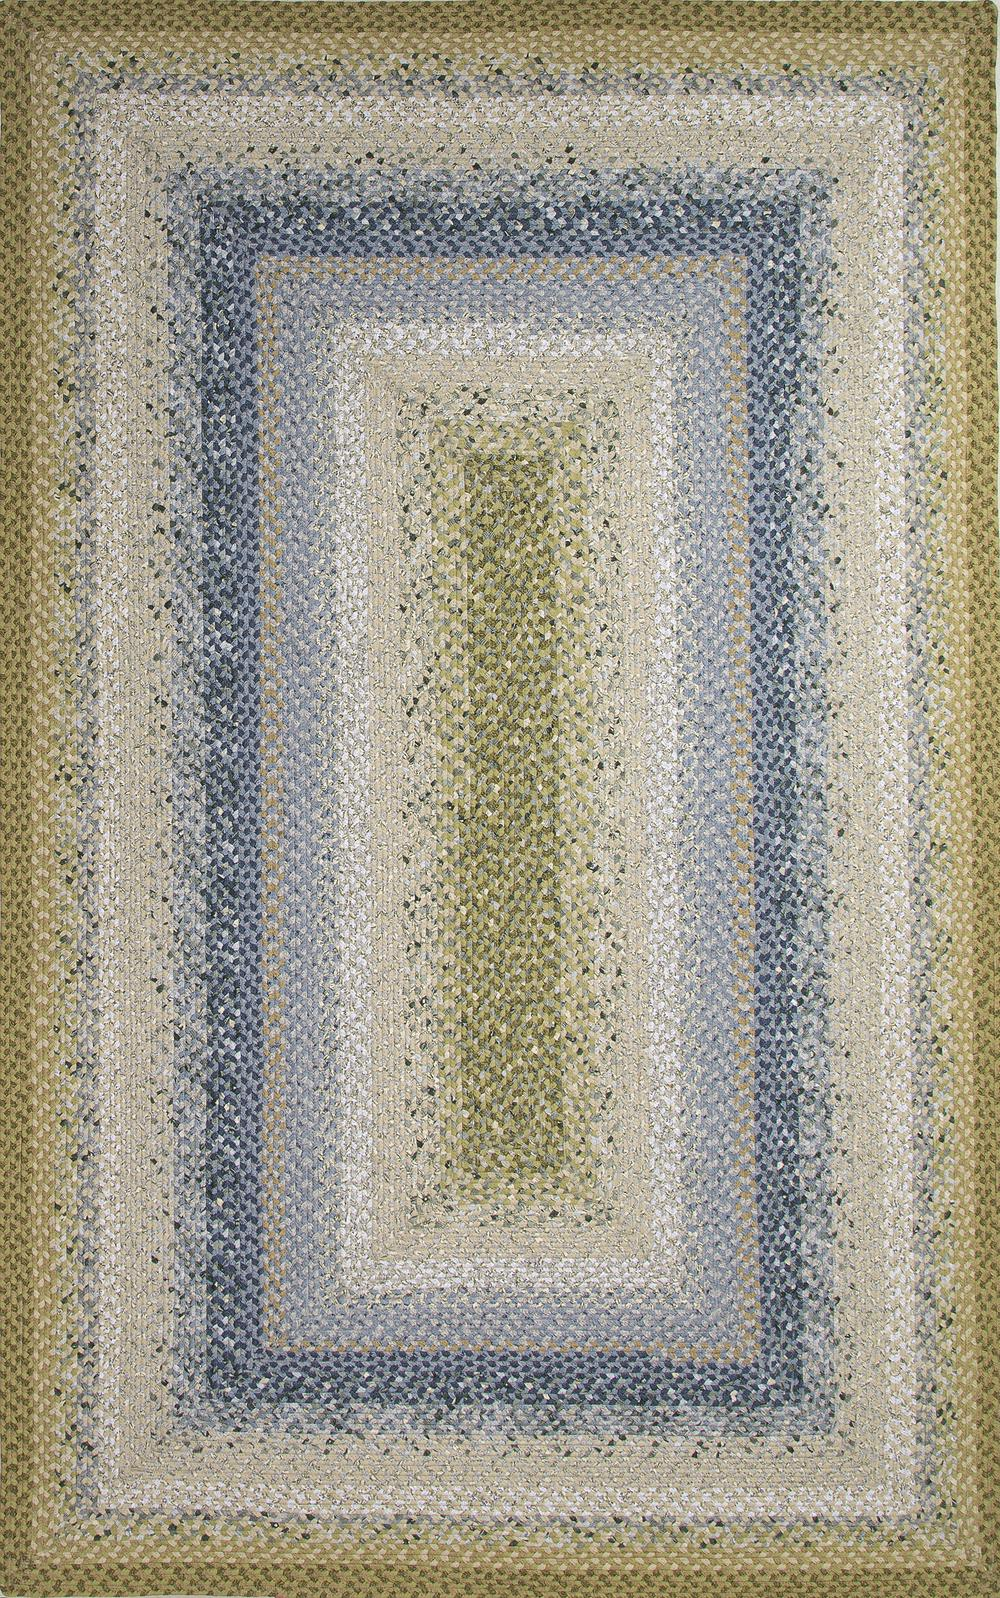 Jaipur Cotton Braided Rugs Seascape Blue Green Cbr05 Area